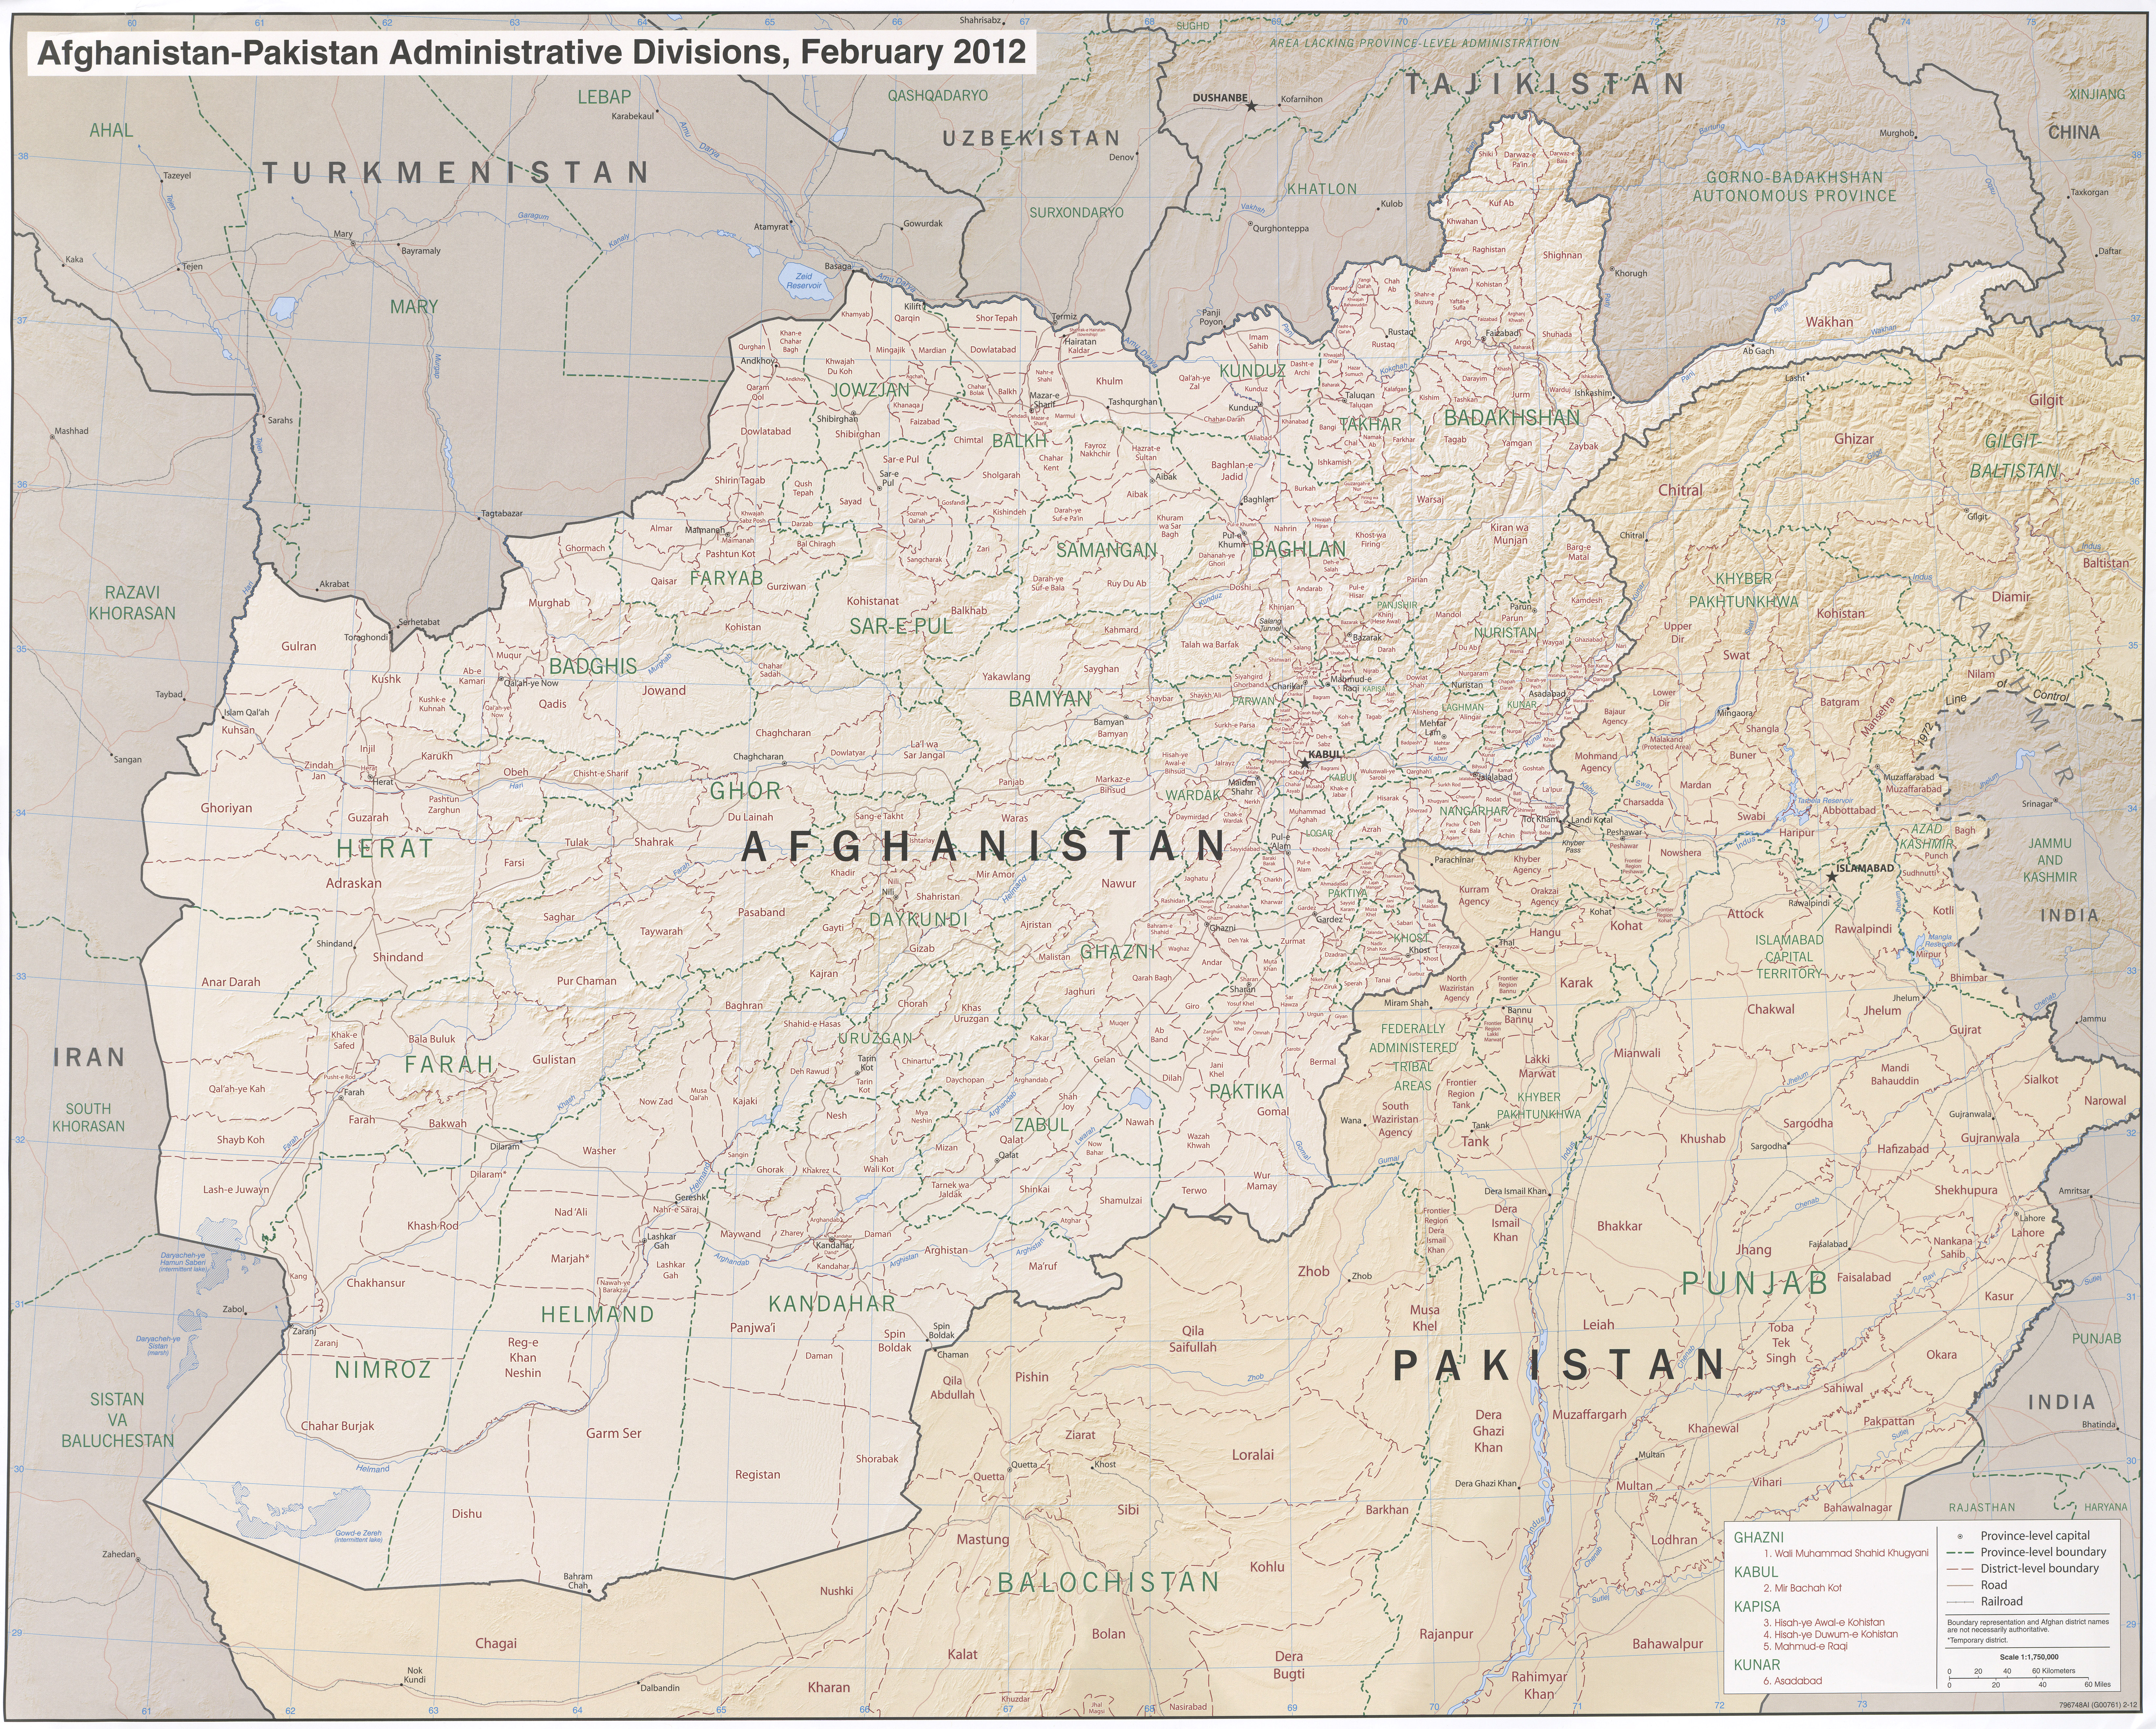 pakistan middle east relations pdf